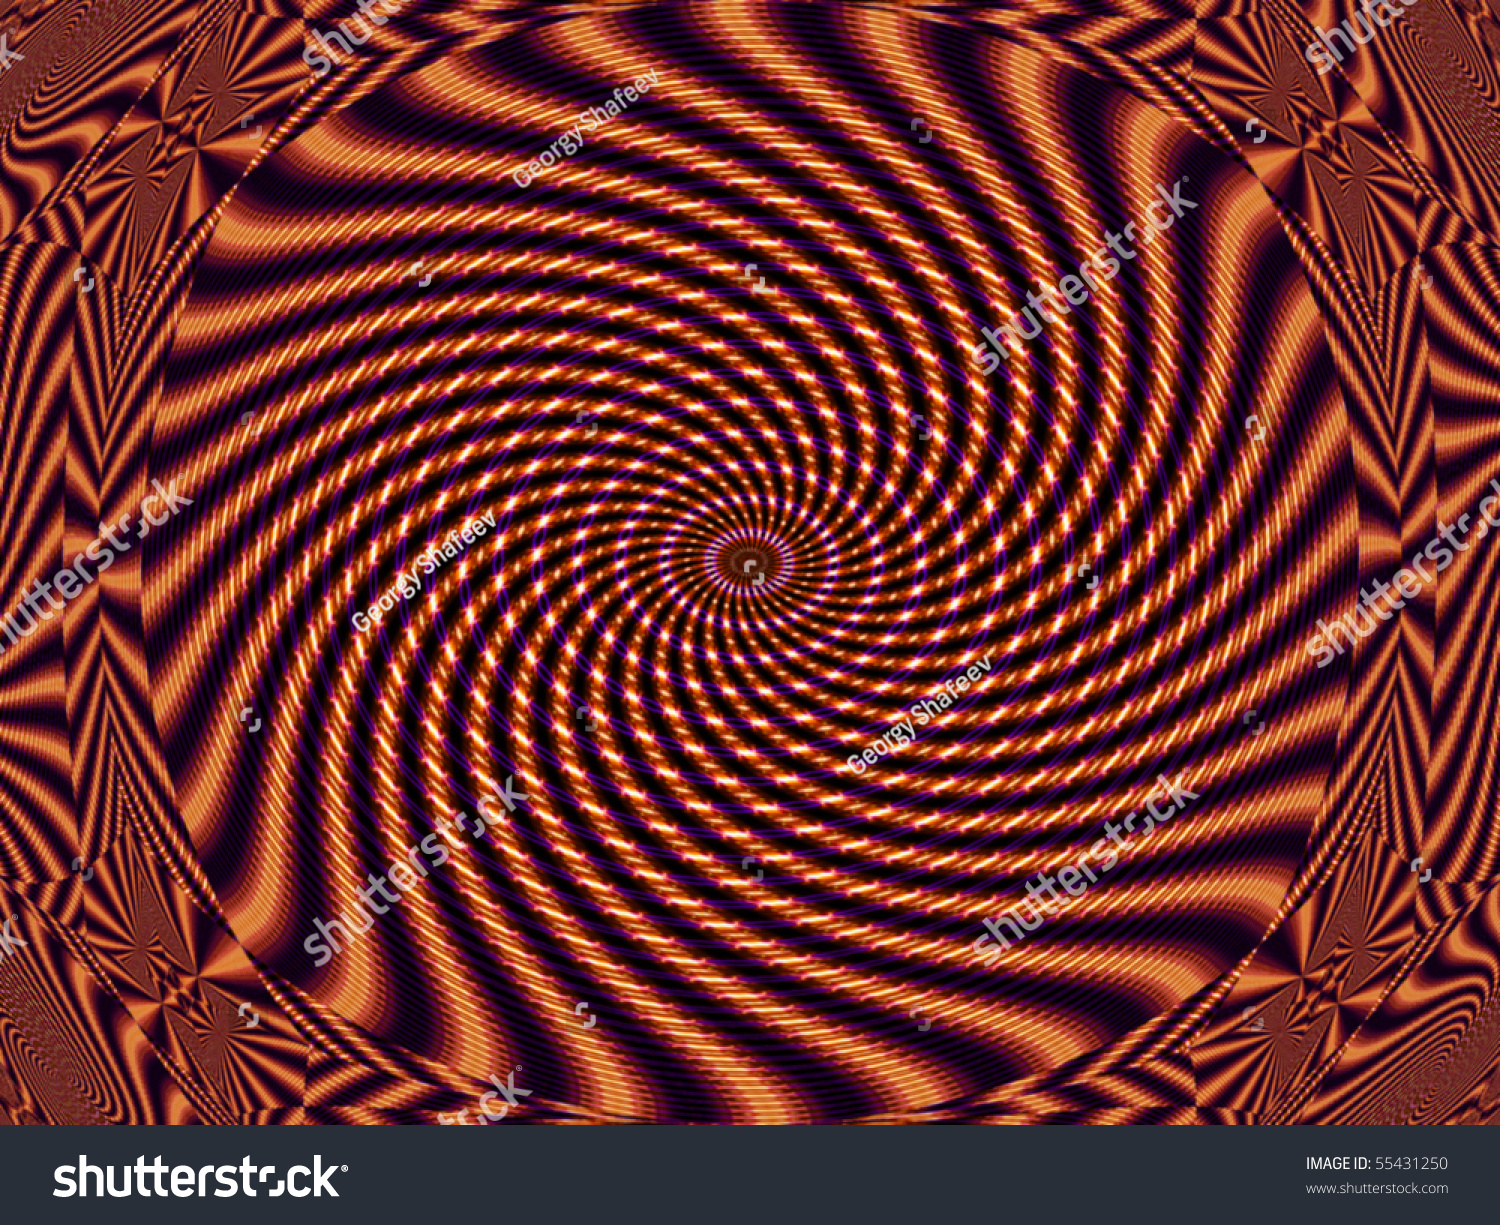 Saving data in vortex structures: New physical phenomenon could ...